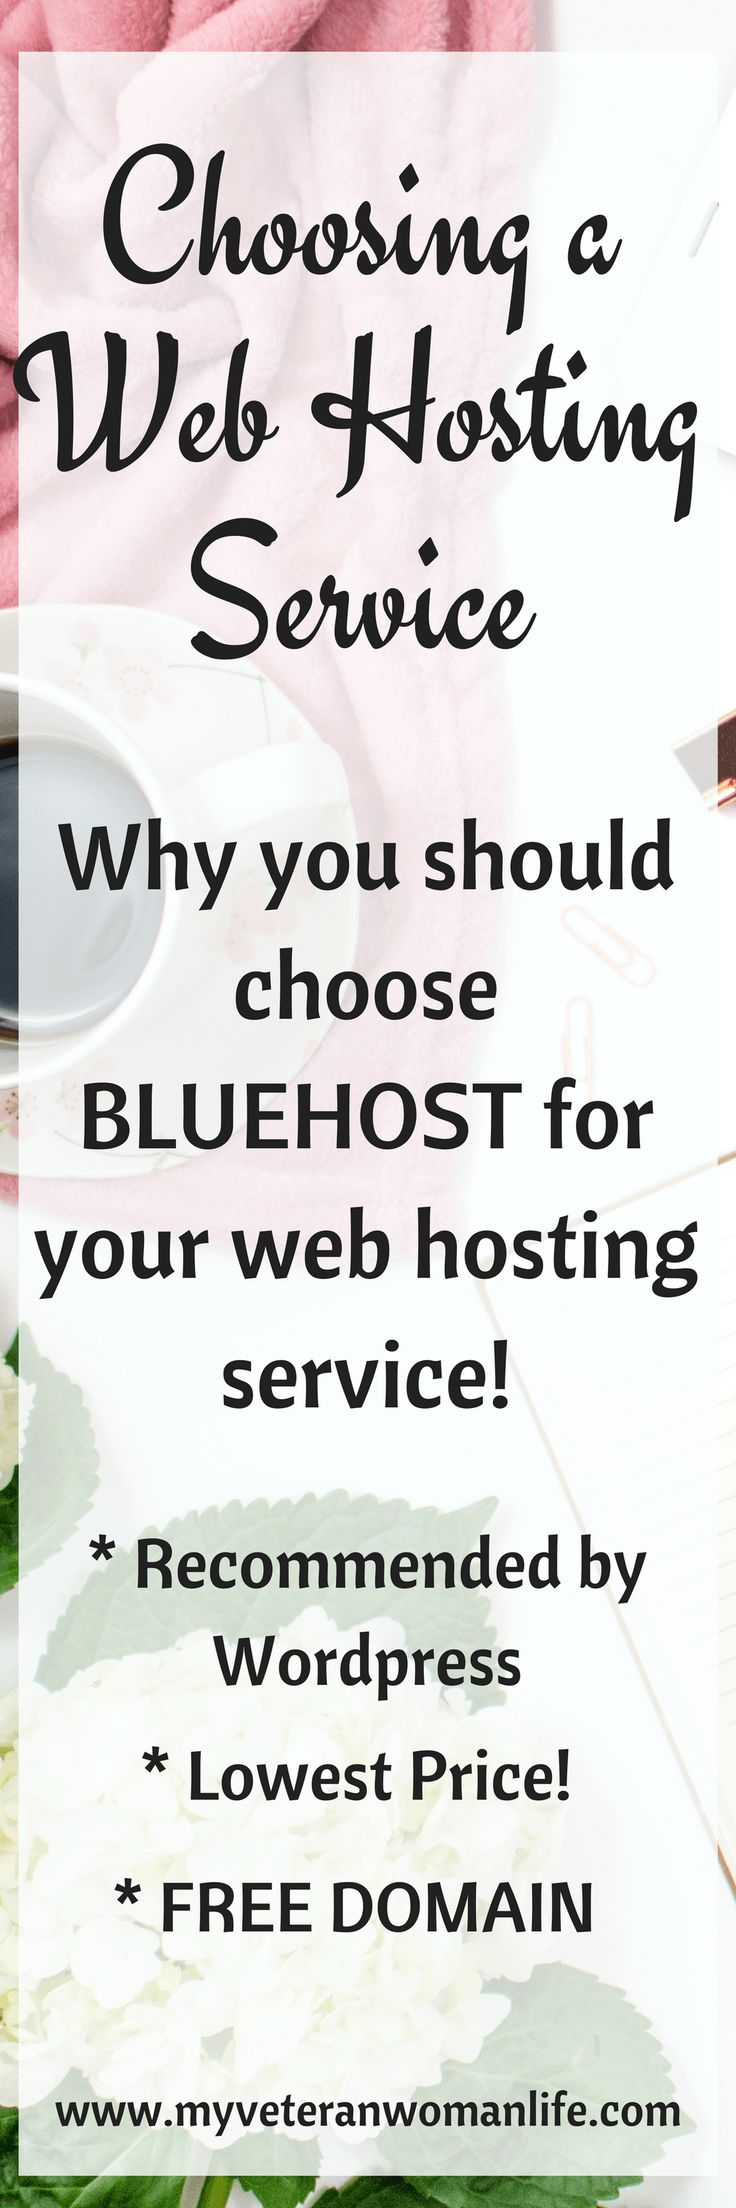 Choosing a Web Hosting Service – Why Bluehost is the Best